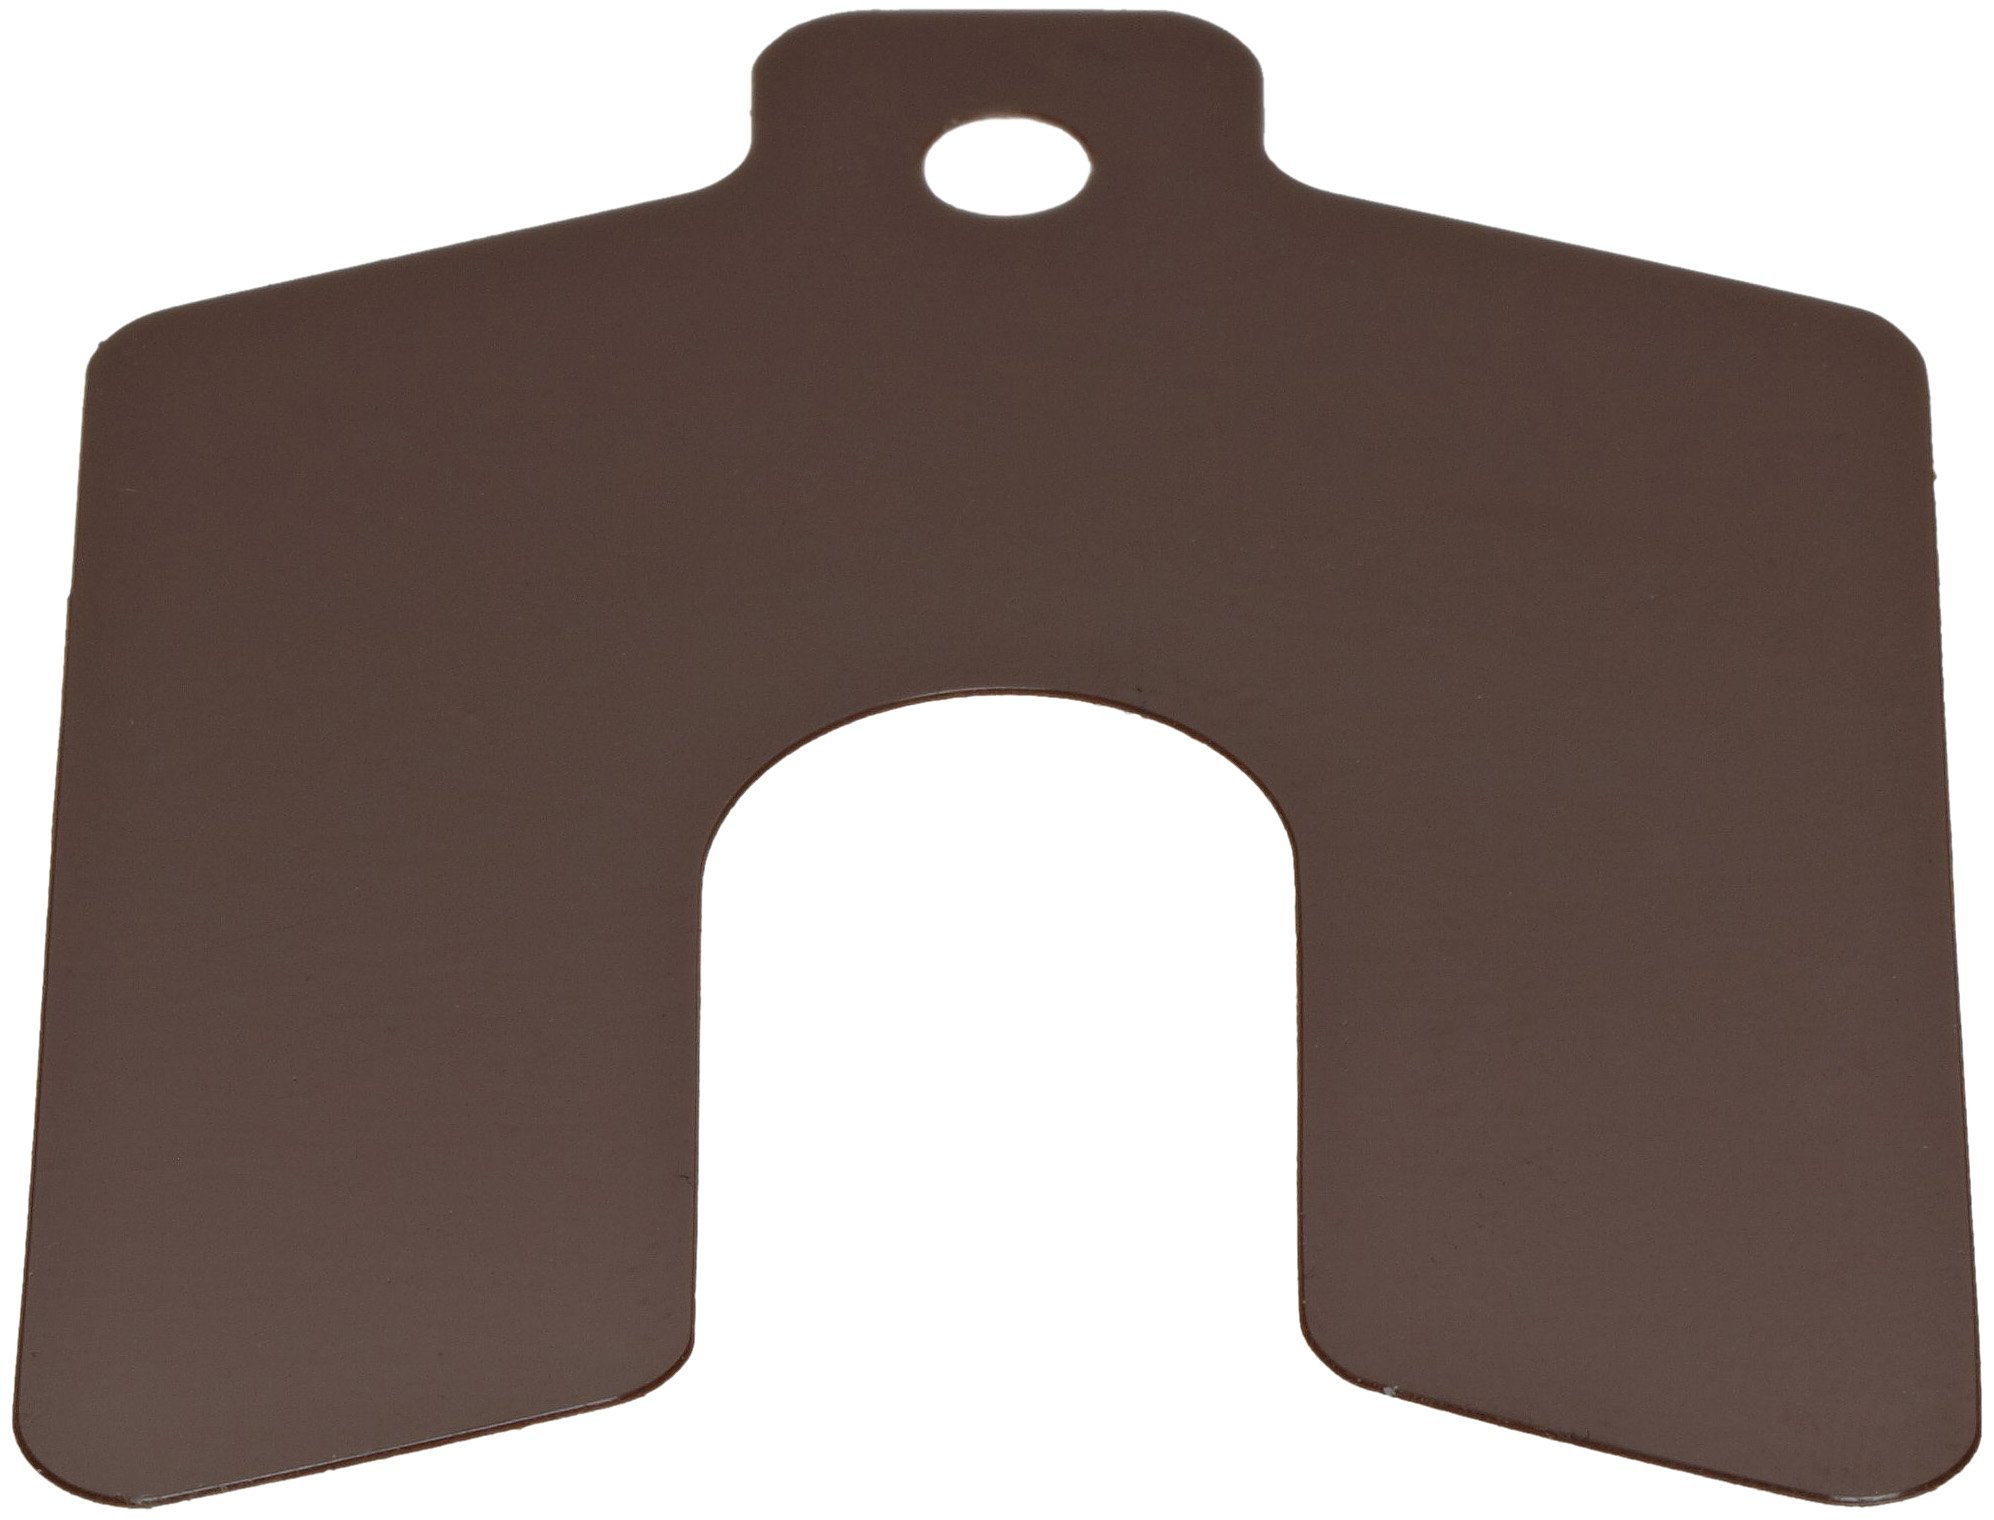 PVC (Polyvinyl Chloride) Slotted Shim, Brown, 0.010'' Thickness, 2'' Width, 2'' Length, 0.625'' Slot Width (Pack of 20) by Small Parts